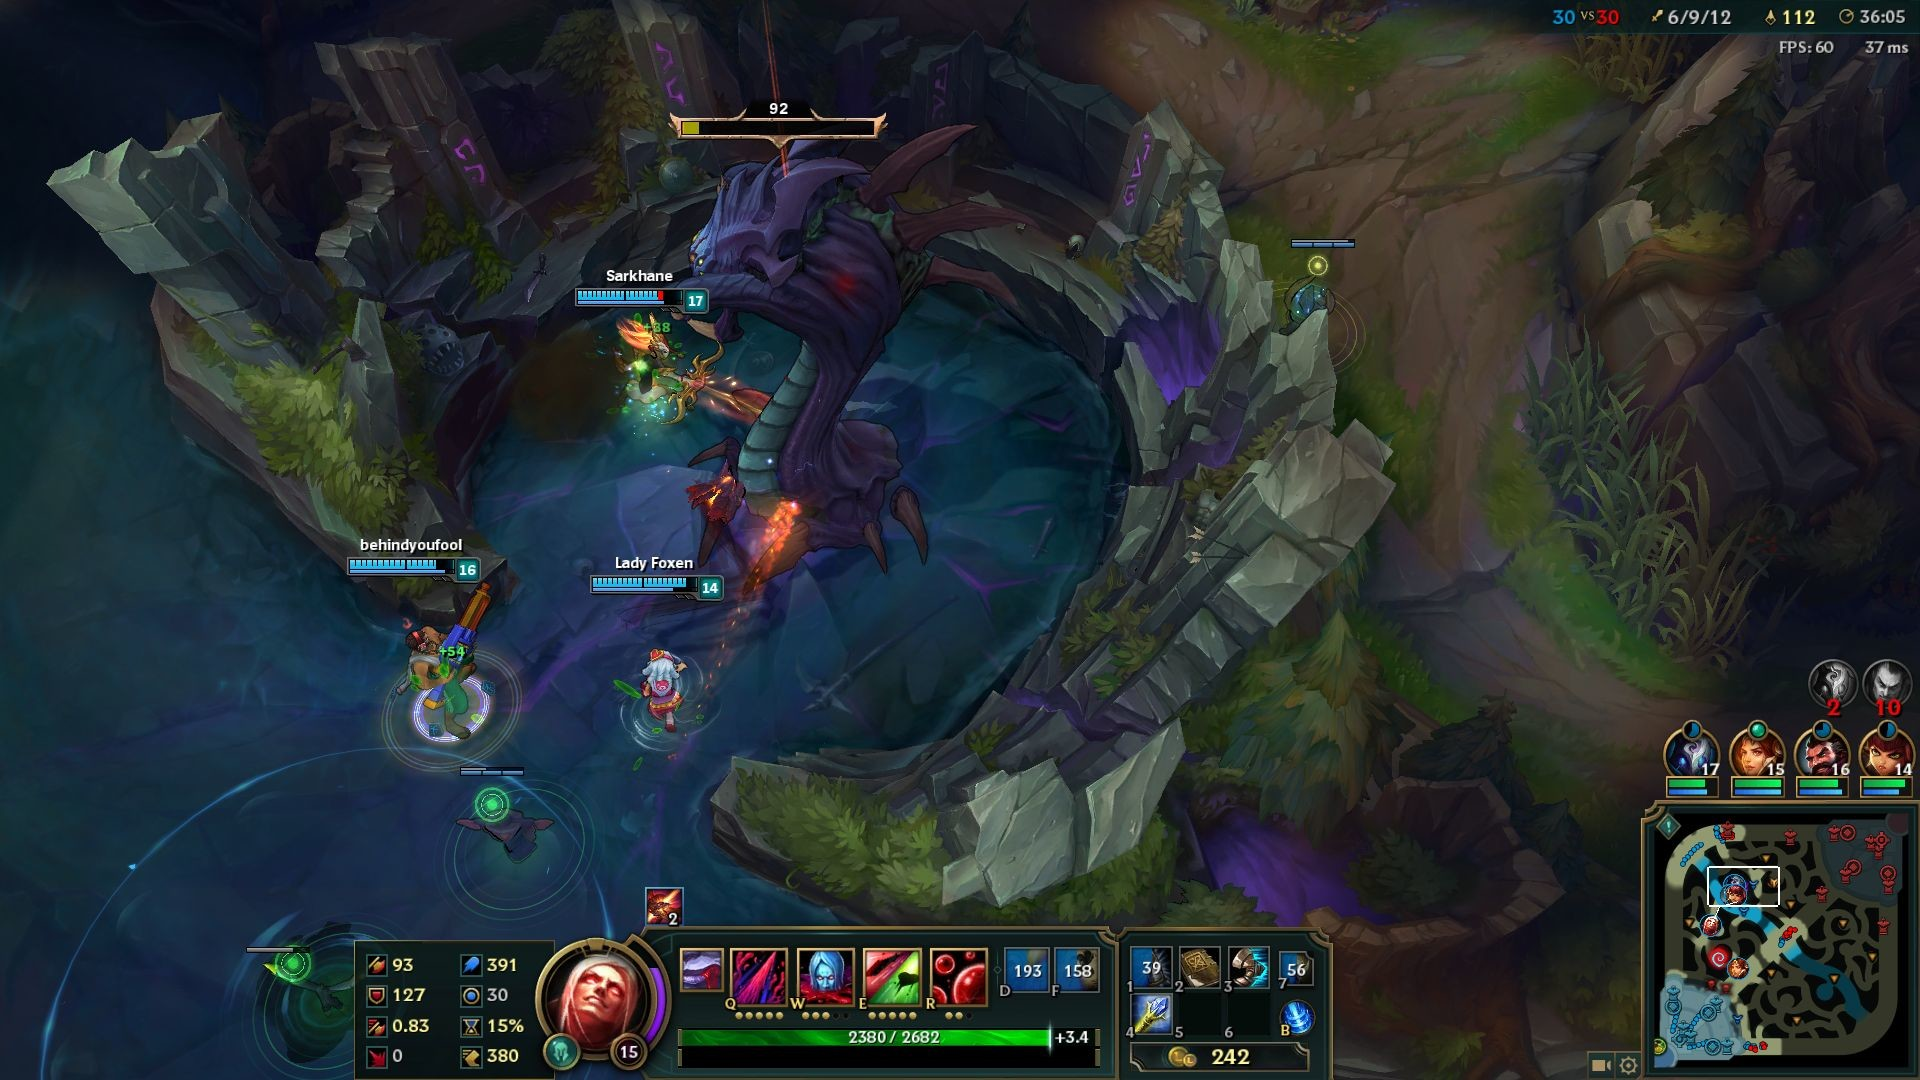 Kindred will make your foes fear Baron fights.